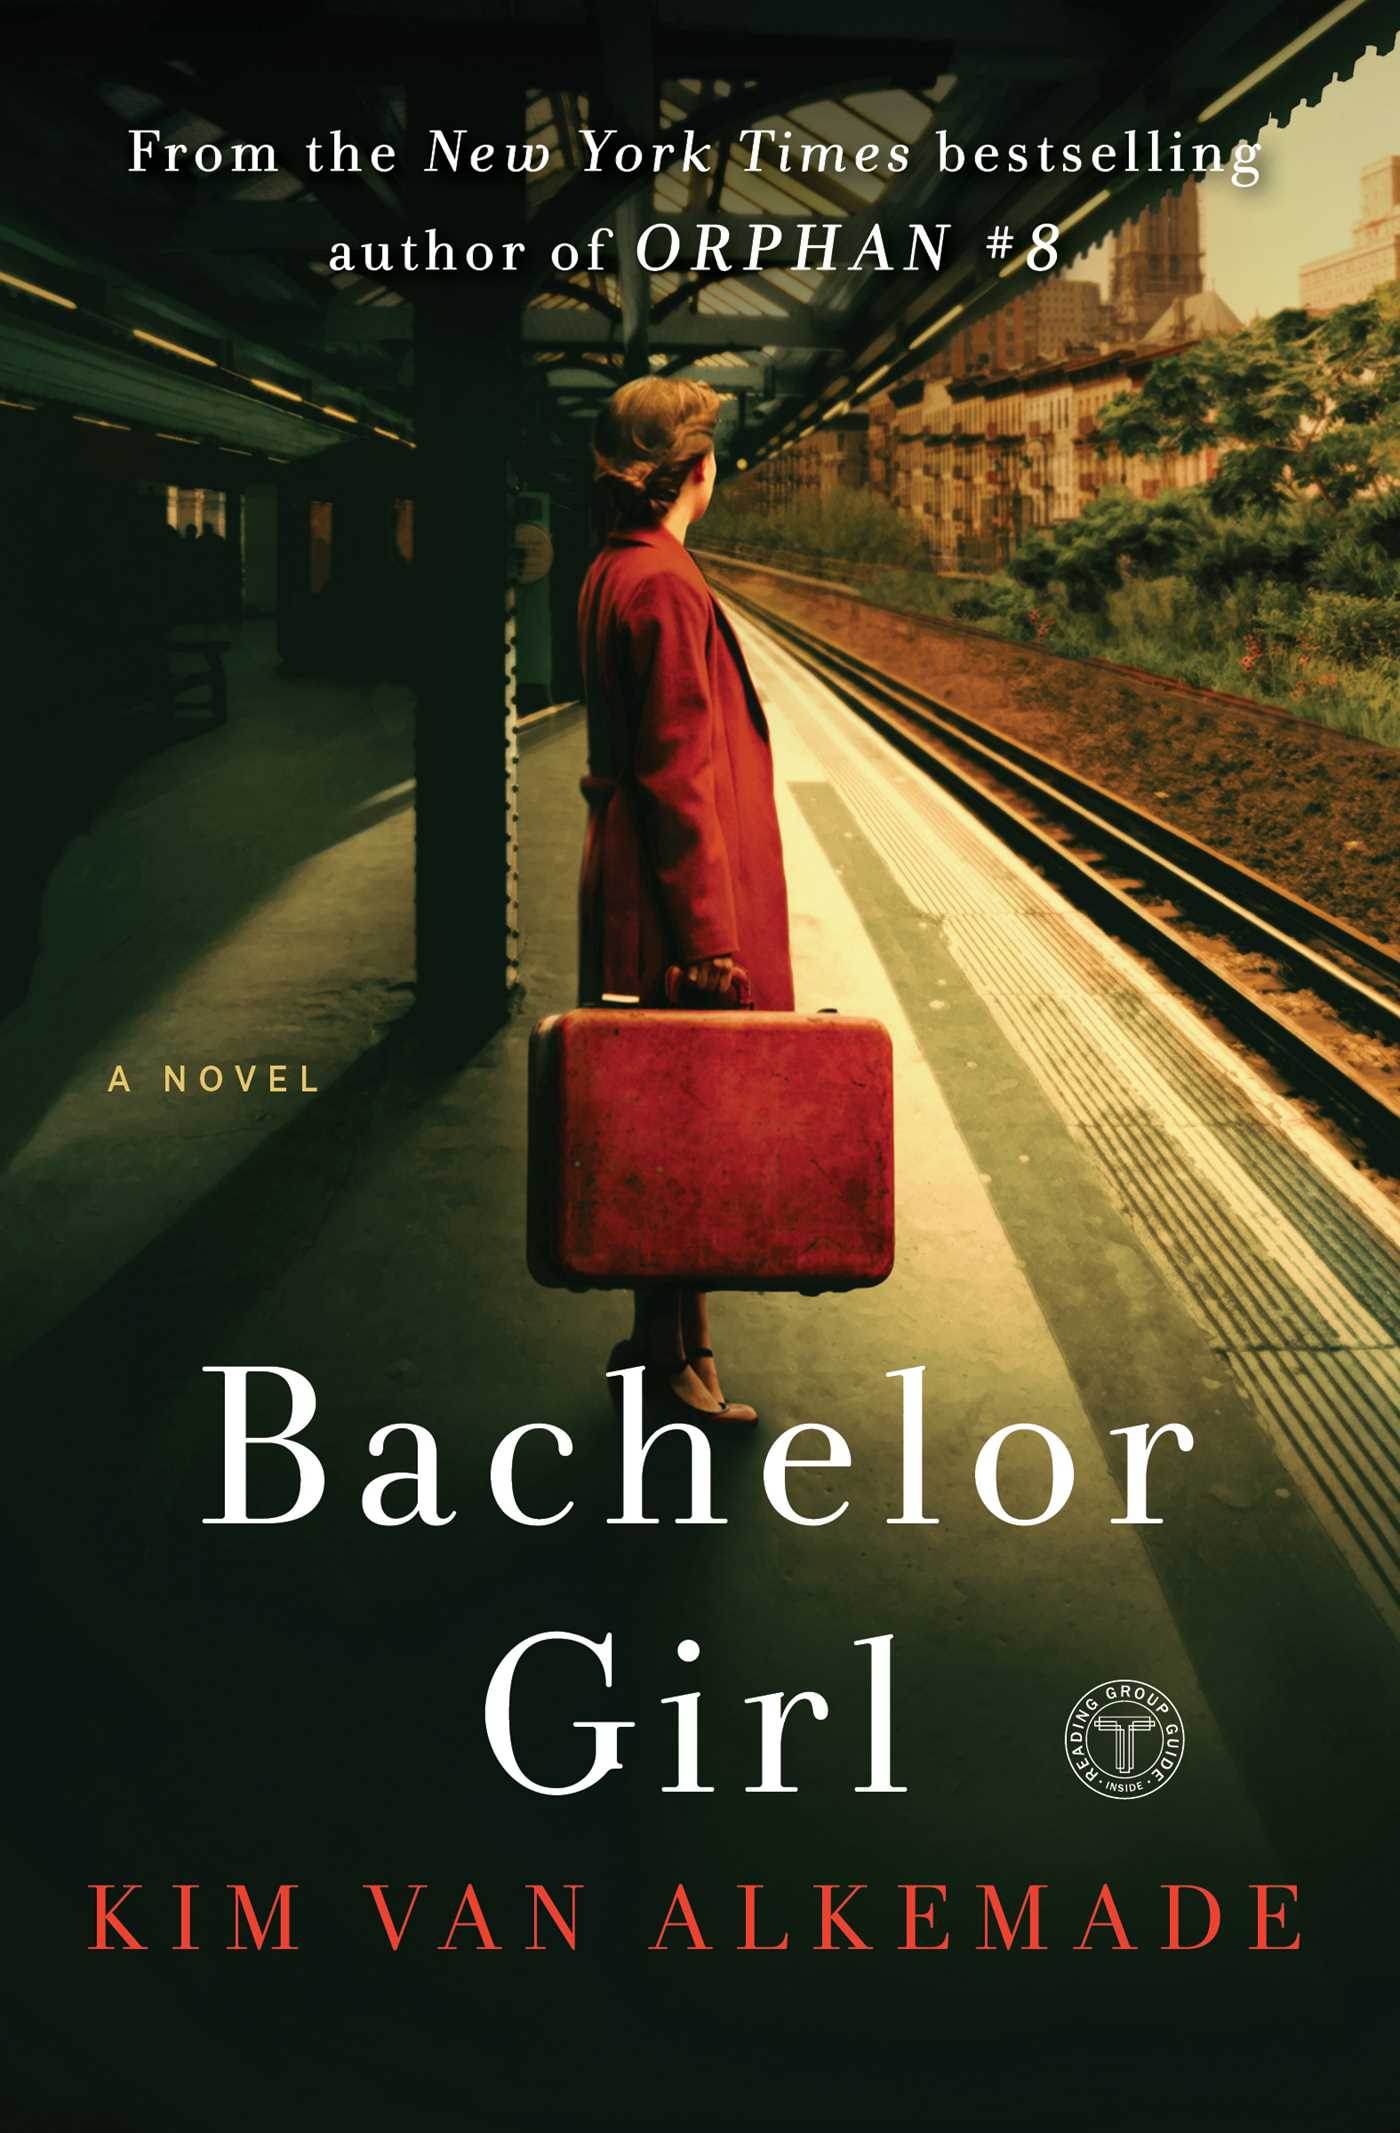 Bachelor Girl A Novel by the Author of Orphan #8